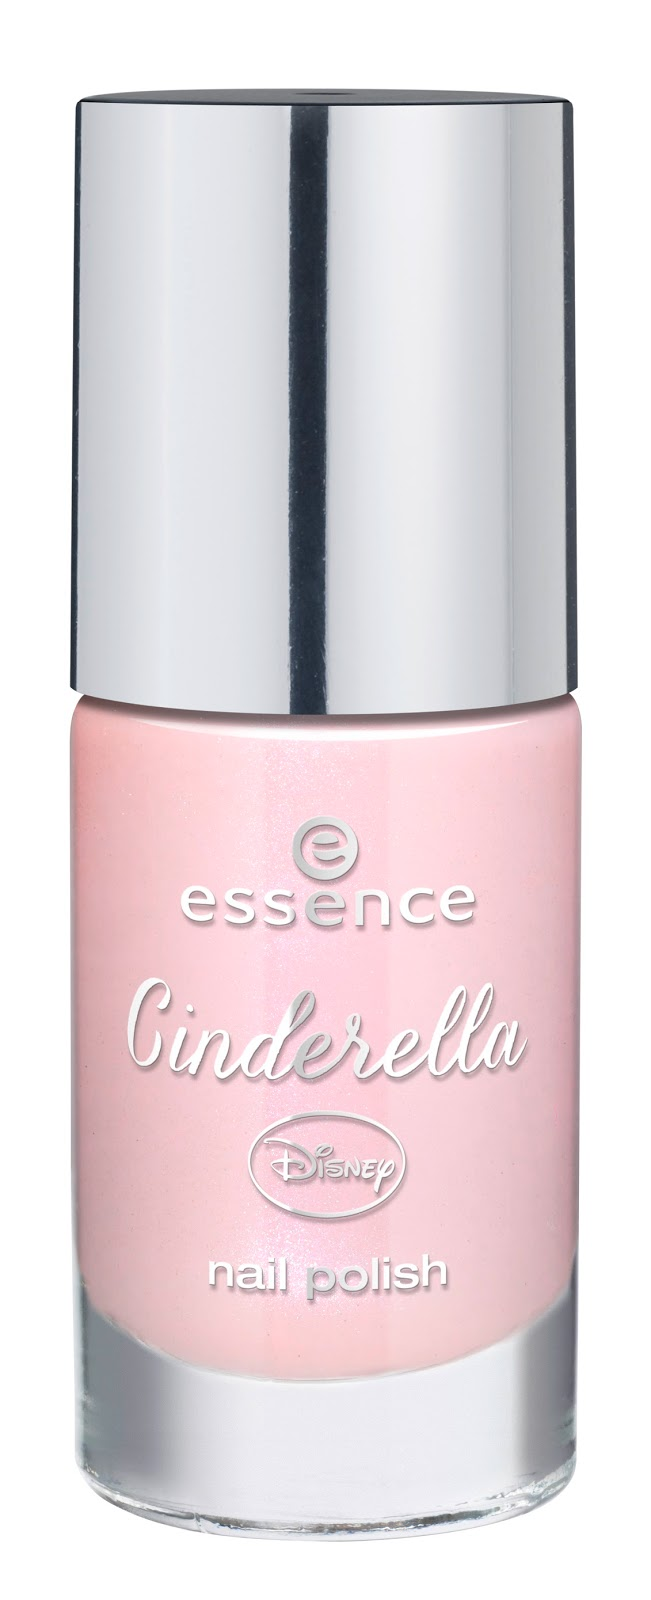 essence cinderella – nail polish, 01 sing, sweet nightingale